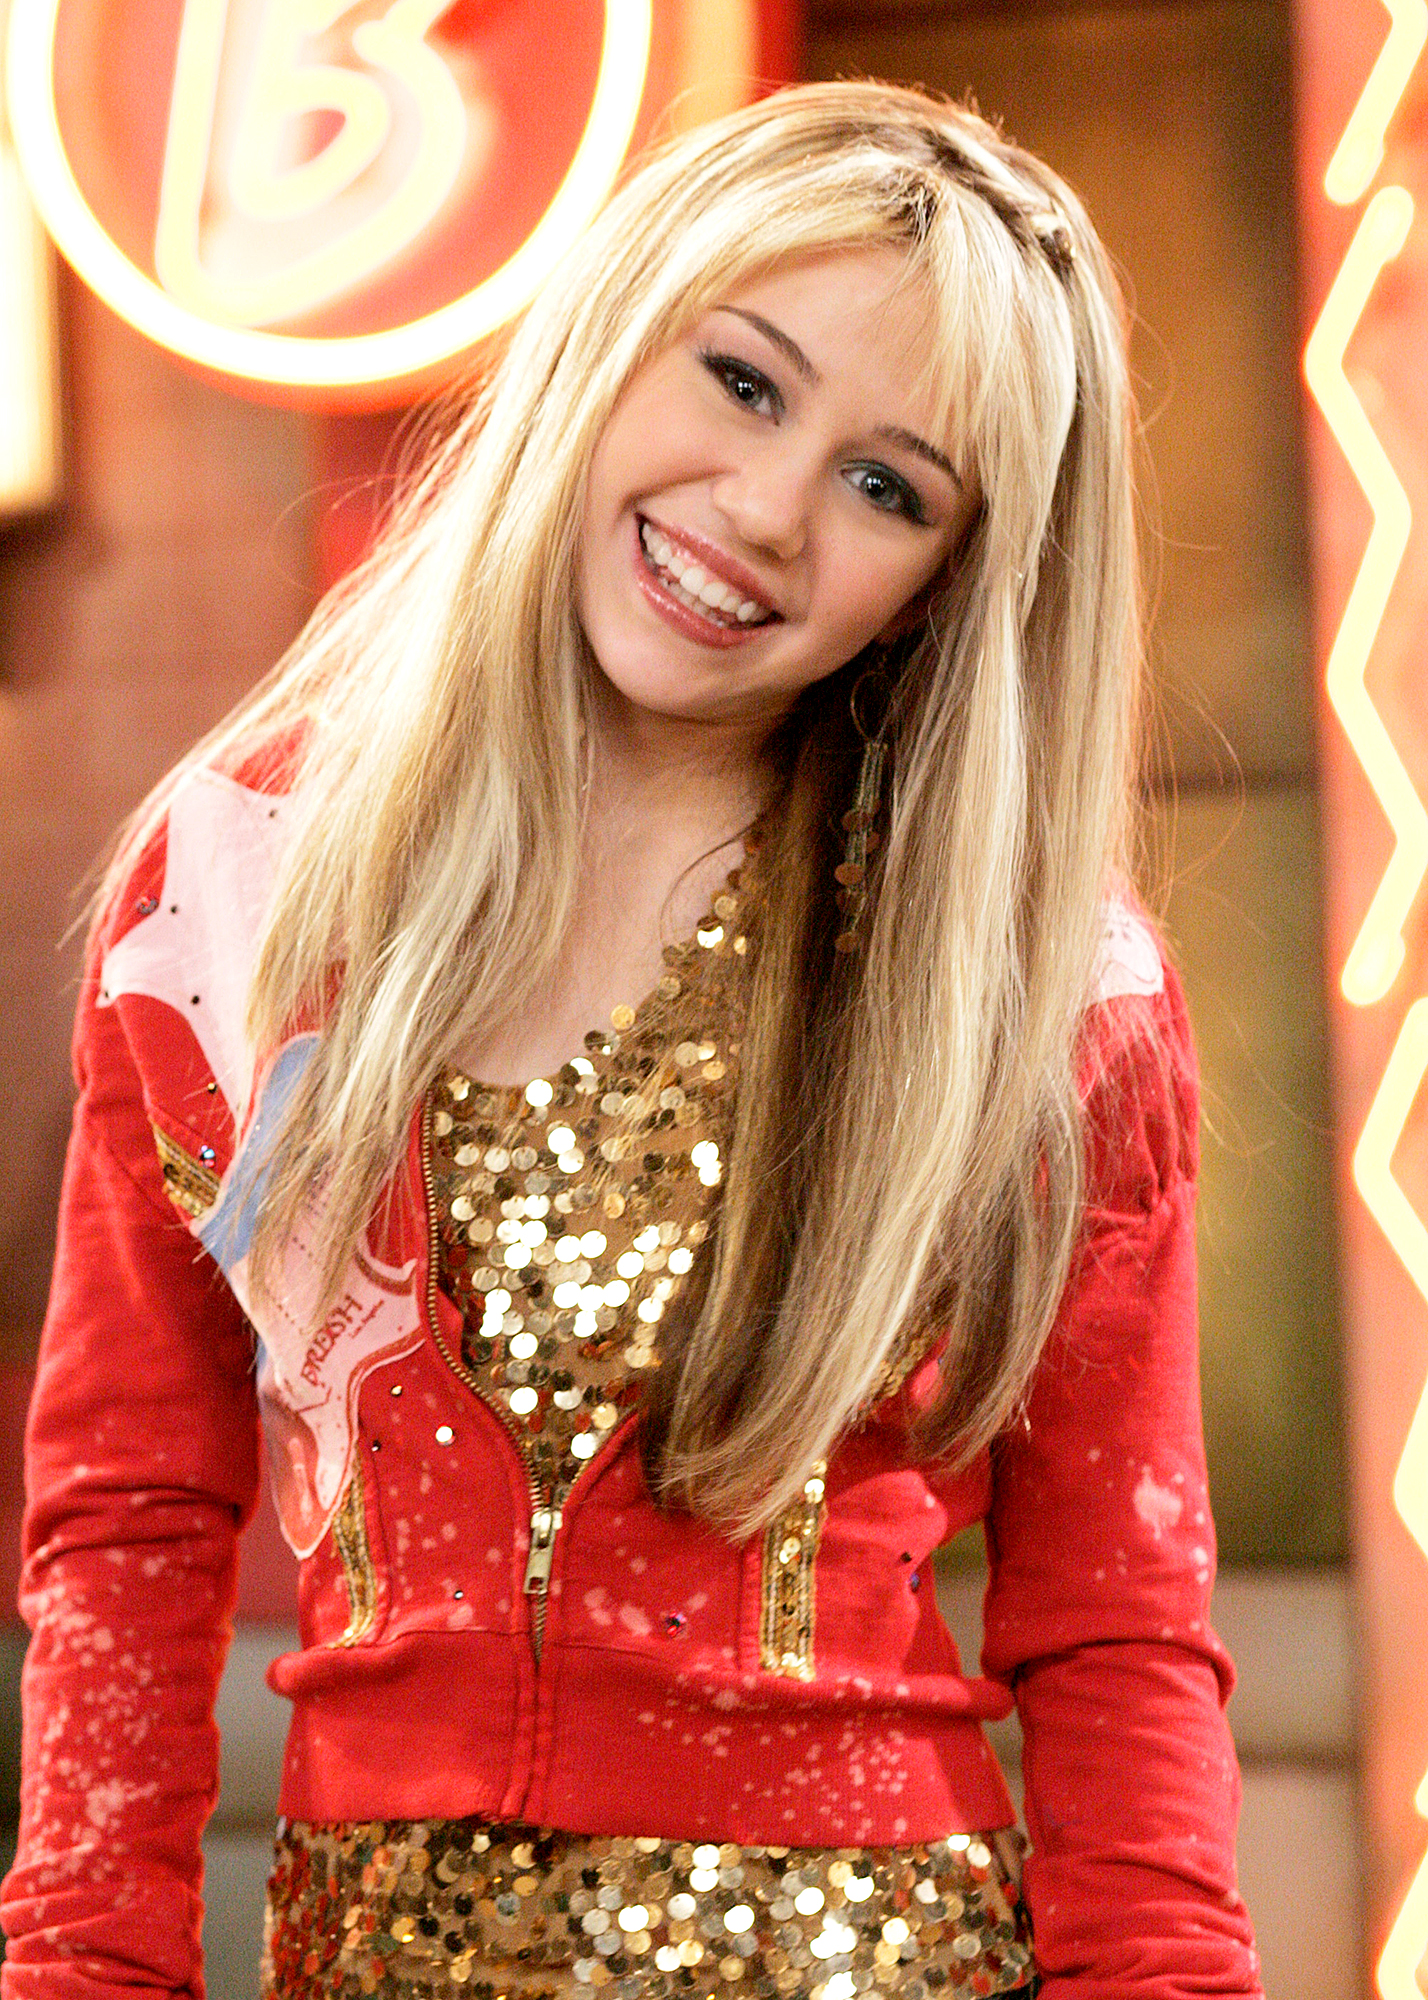 """miley-cyrus - The entertainer openly admitted to her disdain for her iconic character/TV show on RuPaul 's """"What's the Tee?"""" podcast in February 2019. """"From 18 to probably two years ago, I hated [Hannah Montana],"""" she confessed. Nowadays, she's whistling a different tune. """"Since the last record — my last record was called Younger Now and it says, 'Even though it's not who I am, I'm not afraid of who I used to be.' That was my epiphany,"""" she said."""